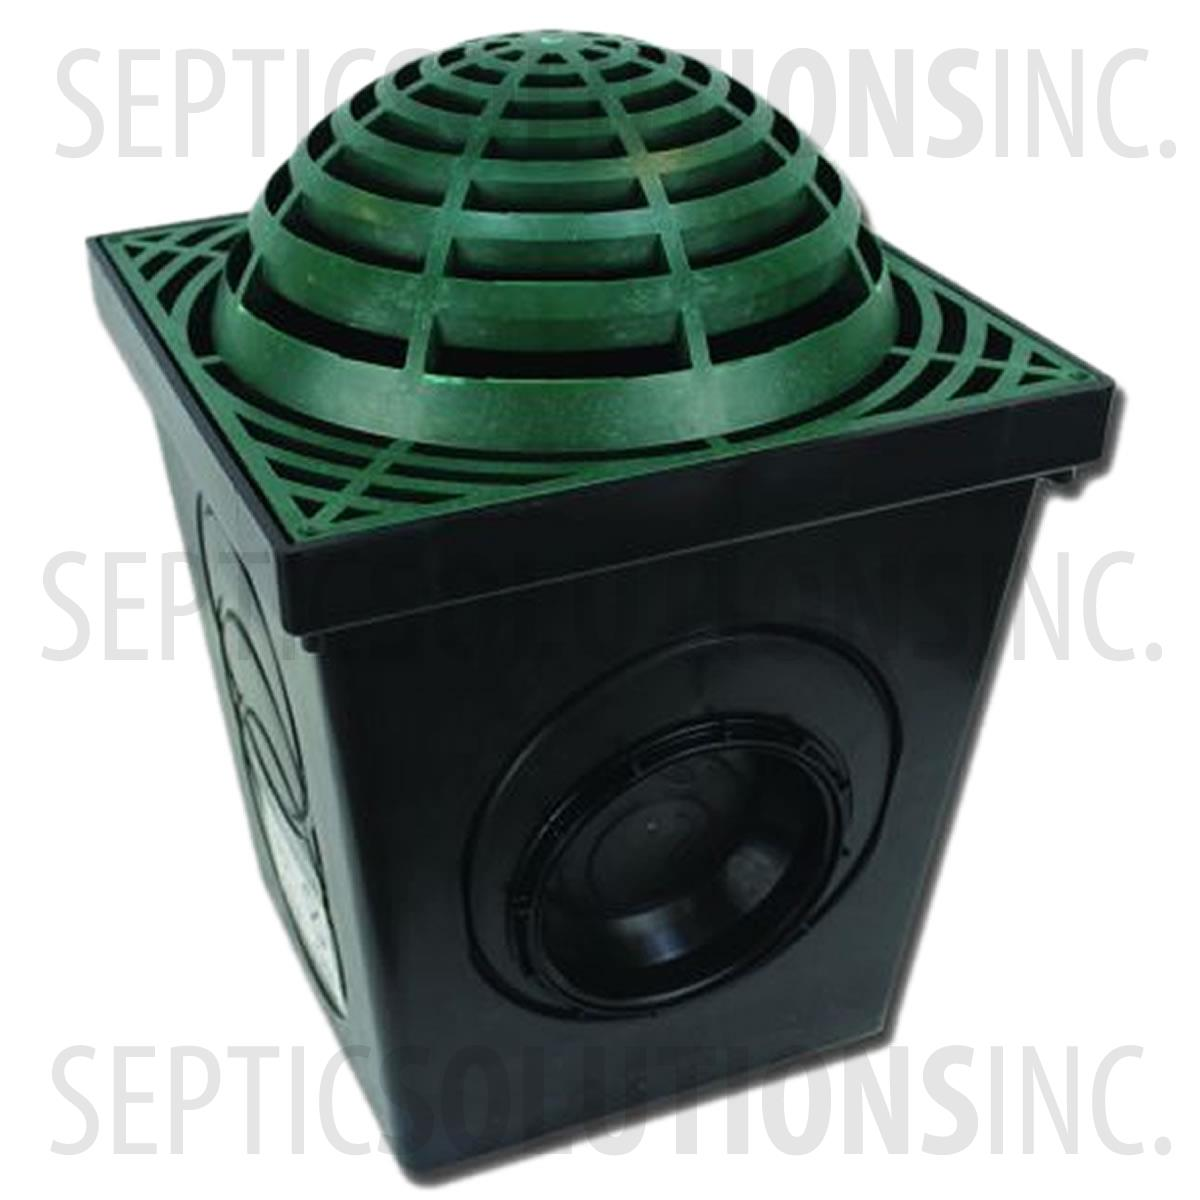 Polylok 12 X 12 Square Catch Basin For Storm Water